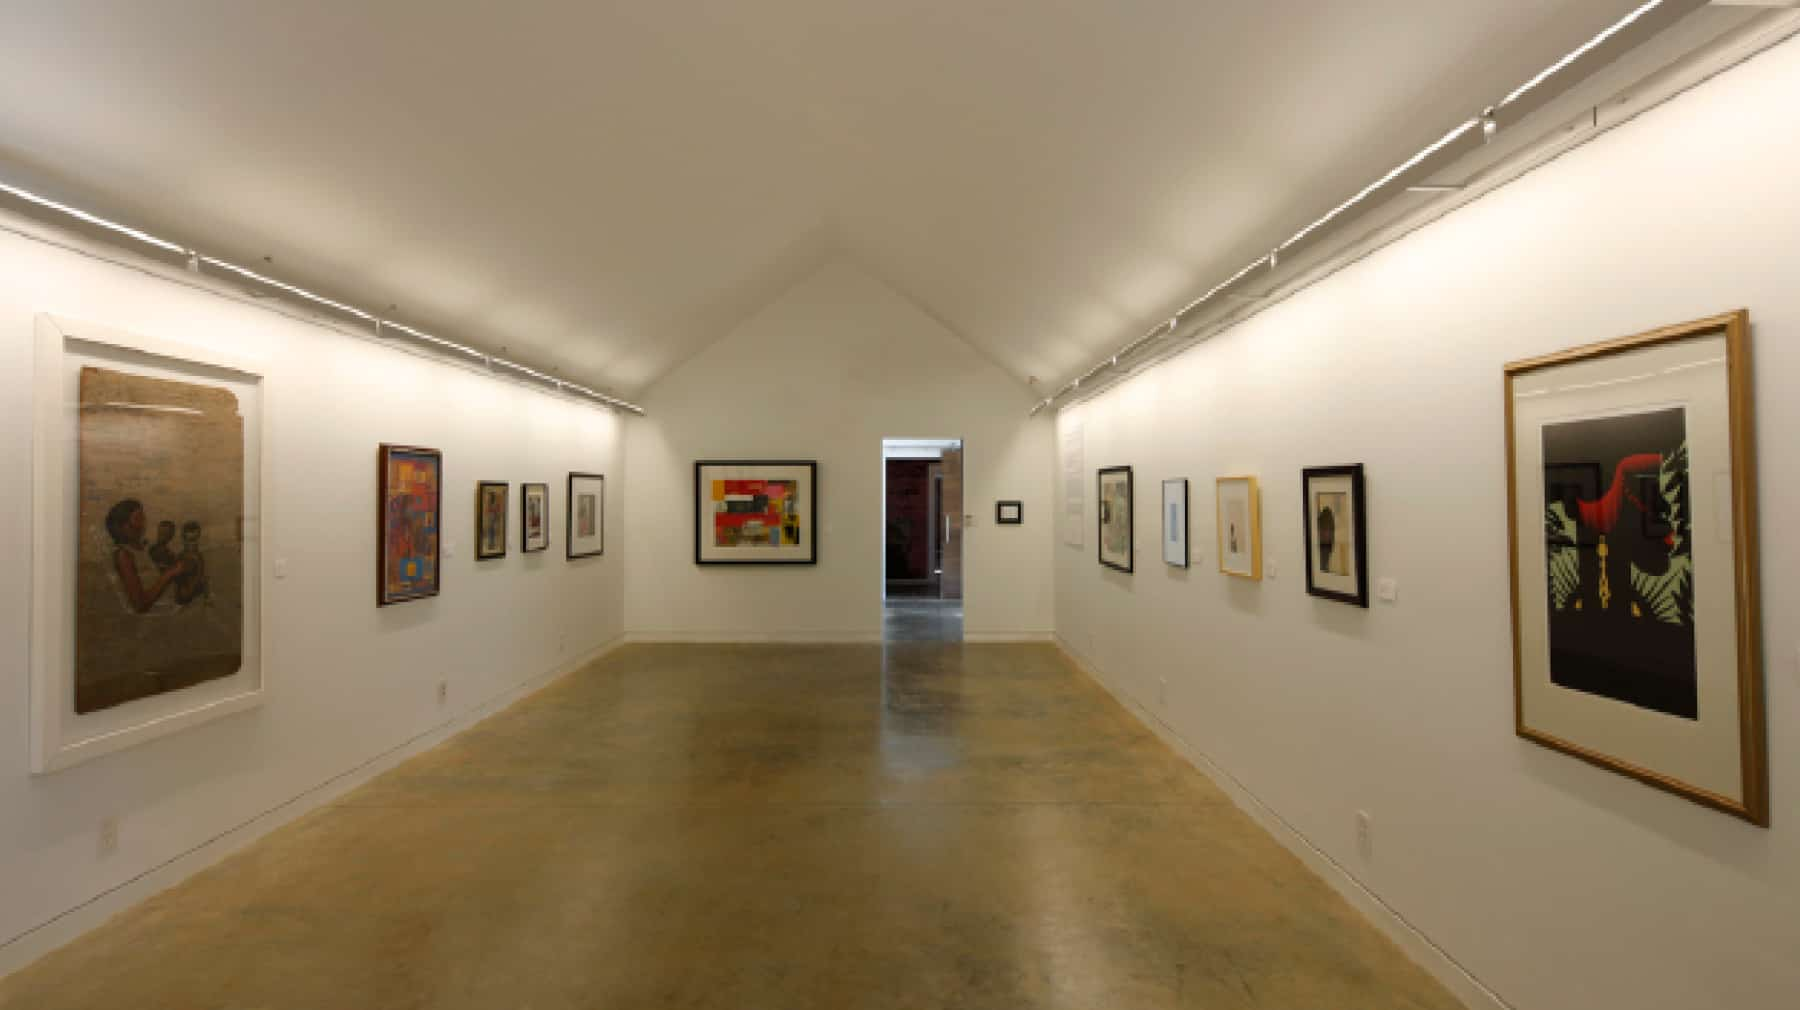 interior shot of gallery displaying African American art of the region